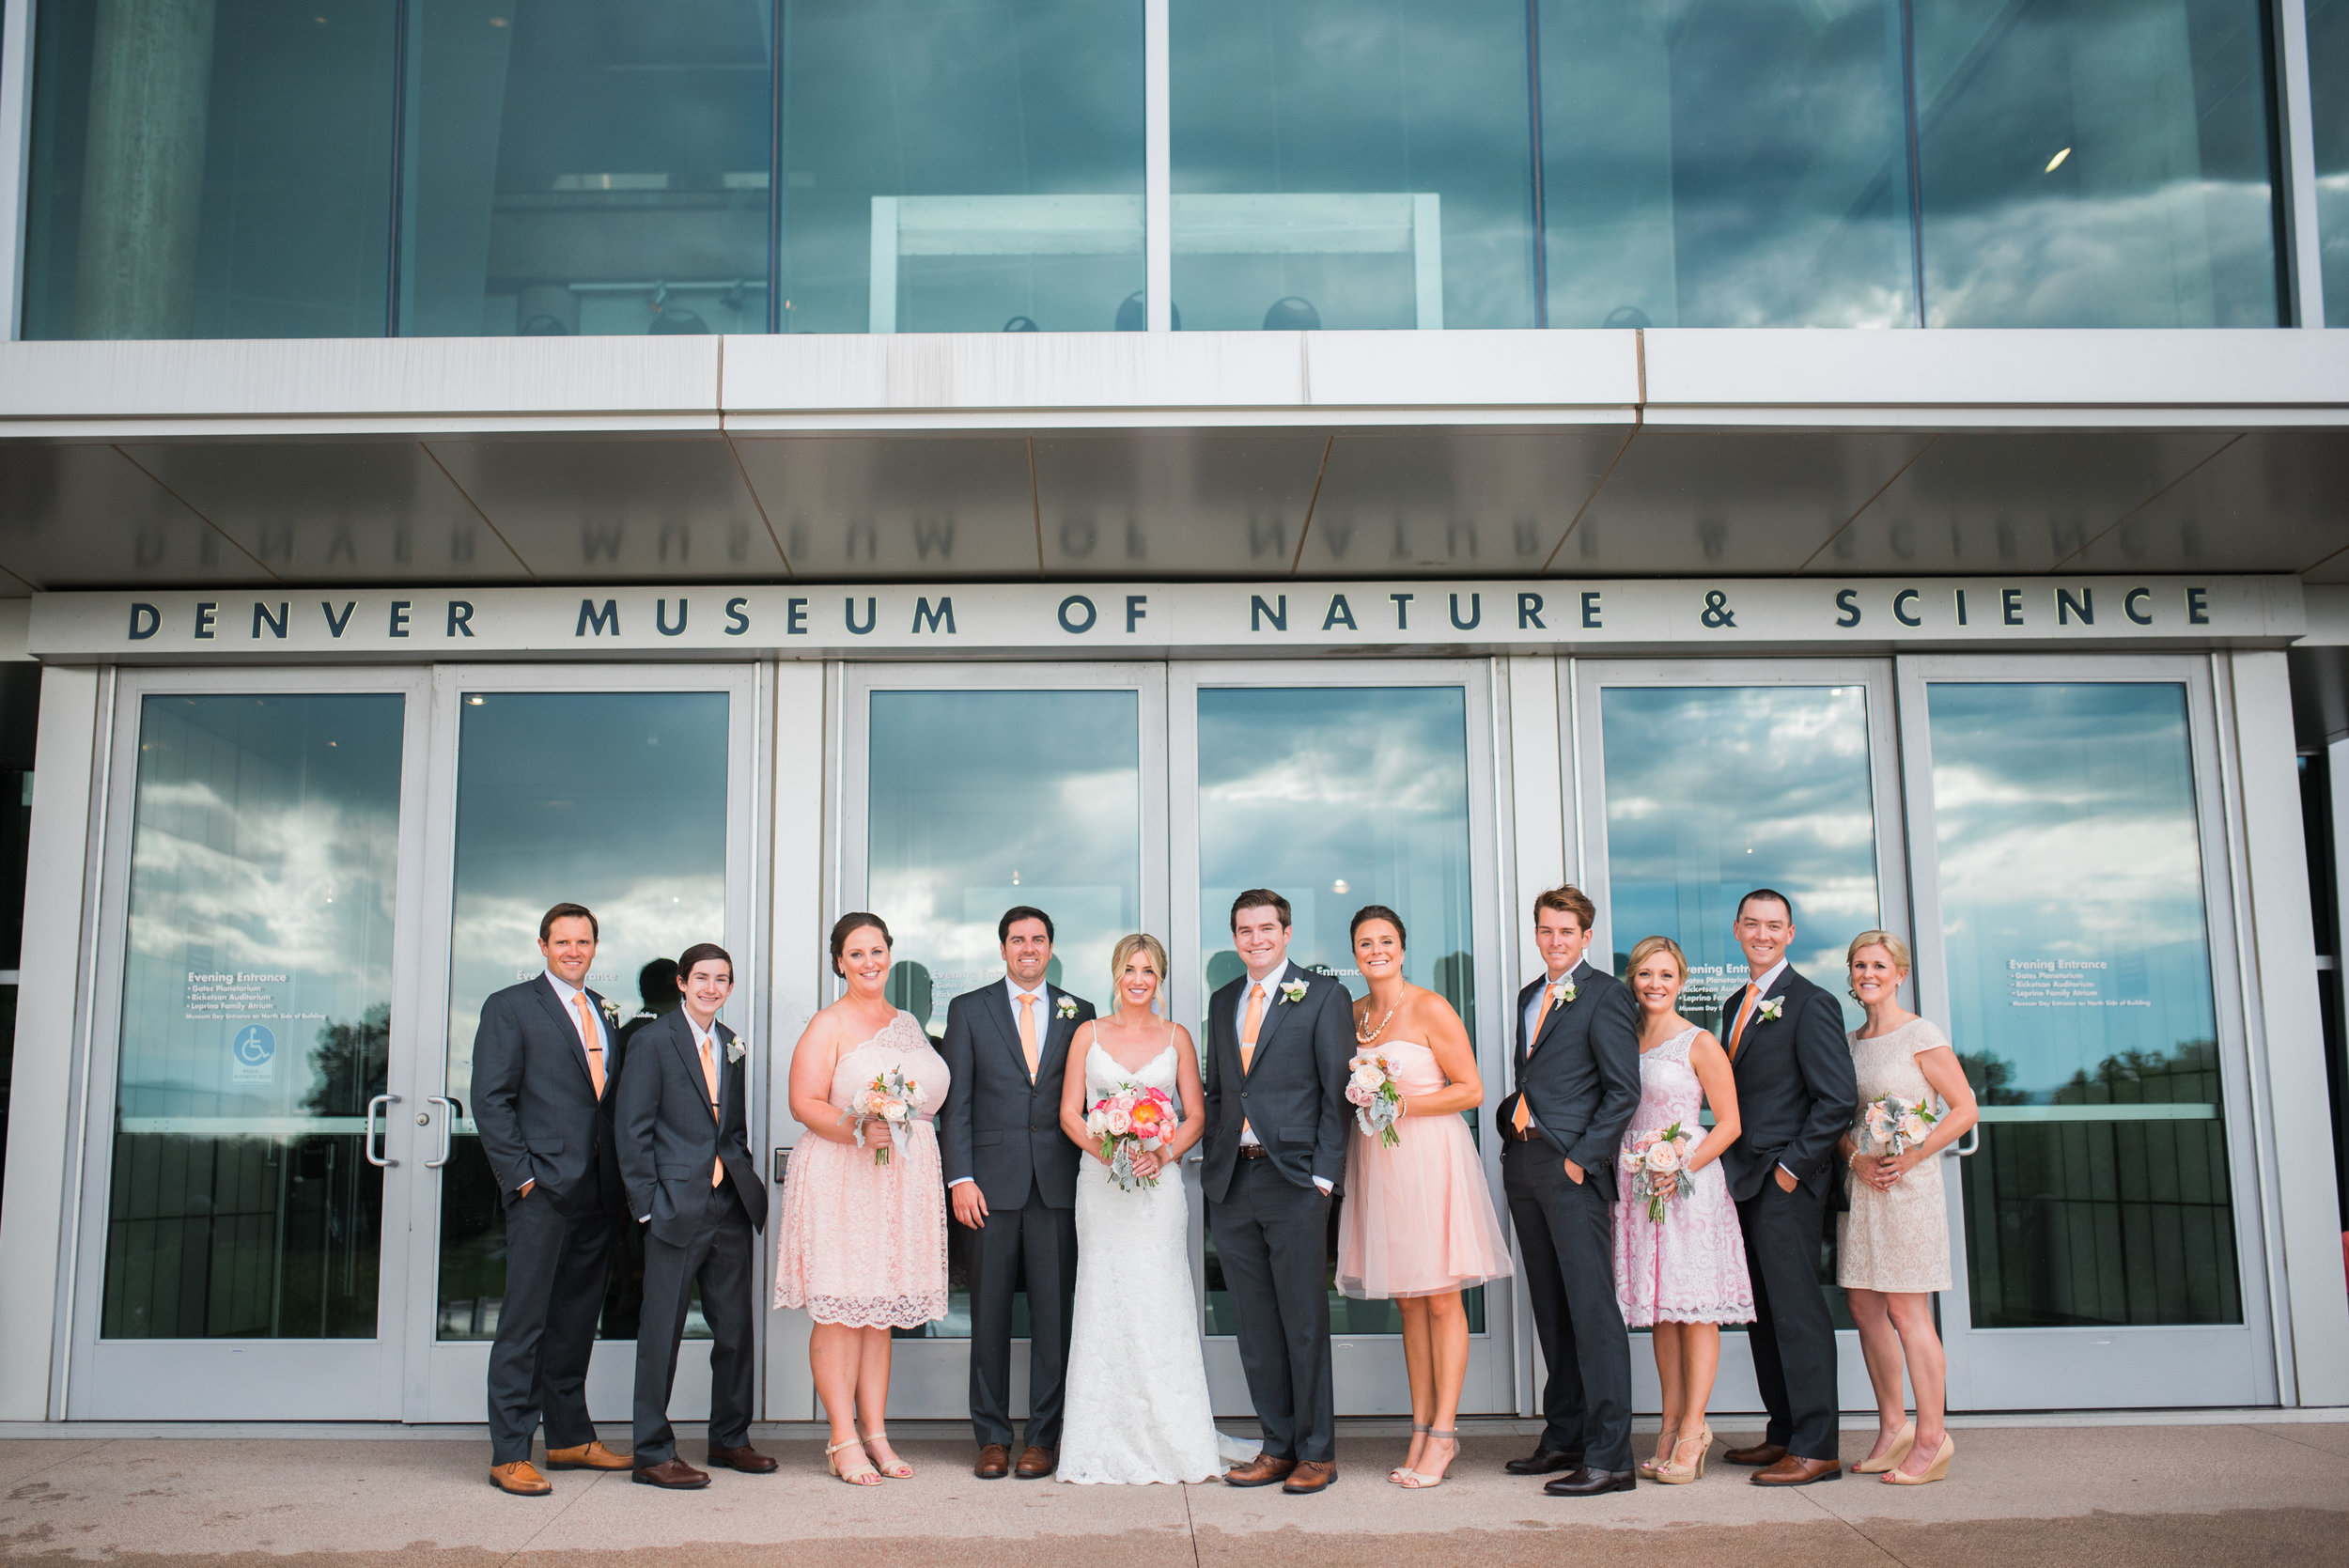 Denver Museum of Nature and Science Wedding - The Overwhelmed Bride Wedding Blog